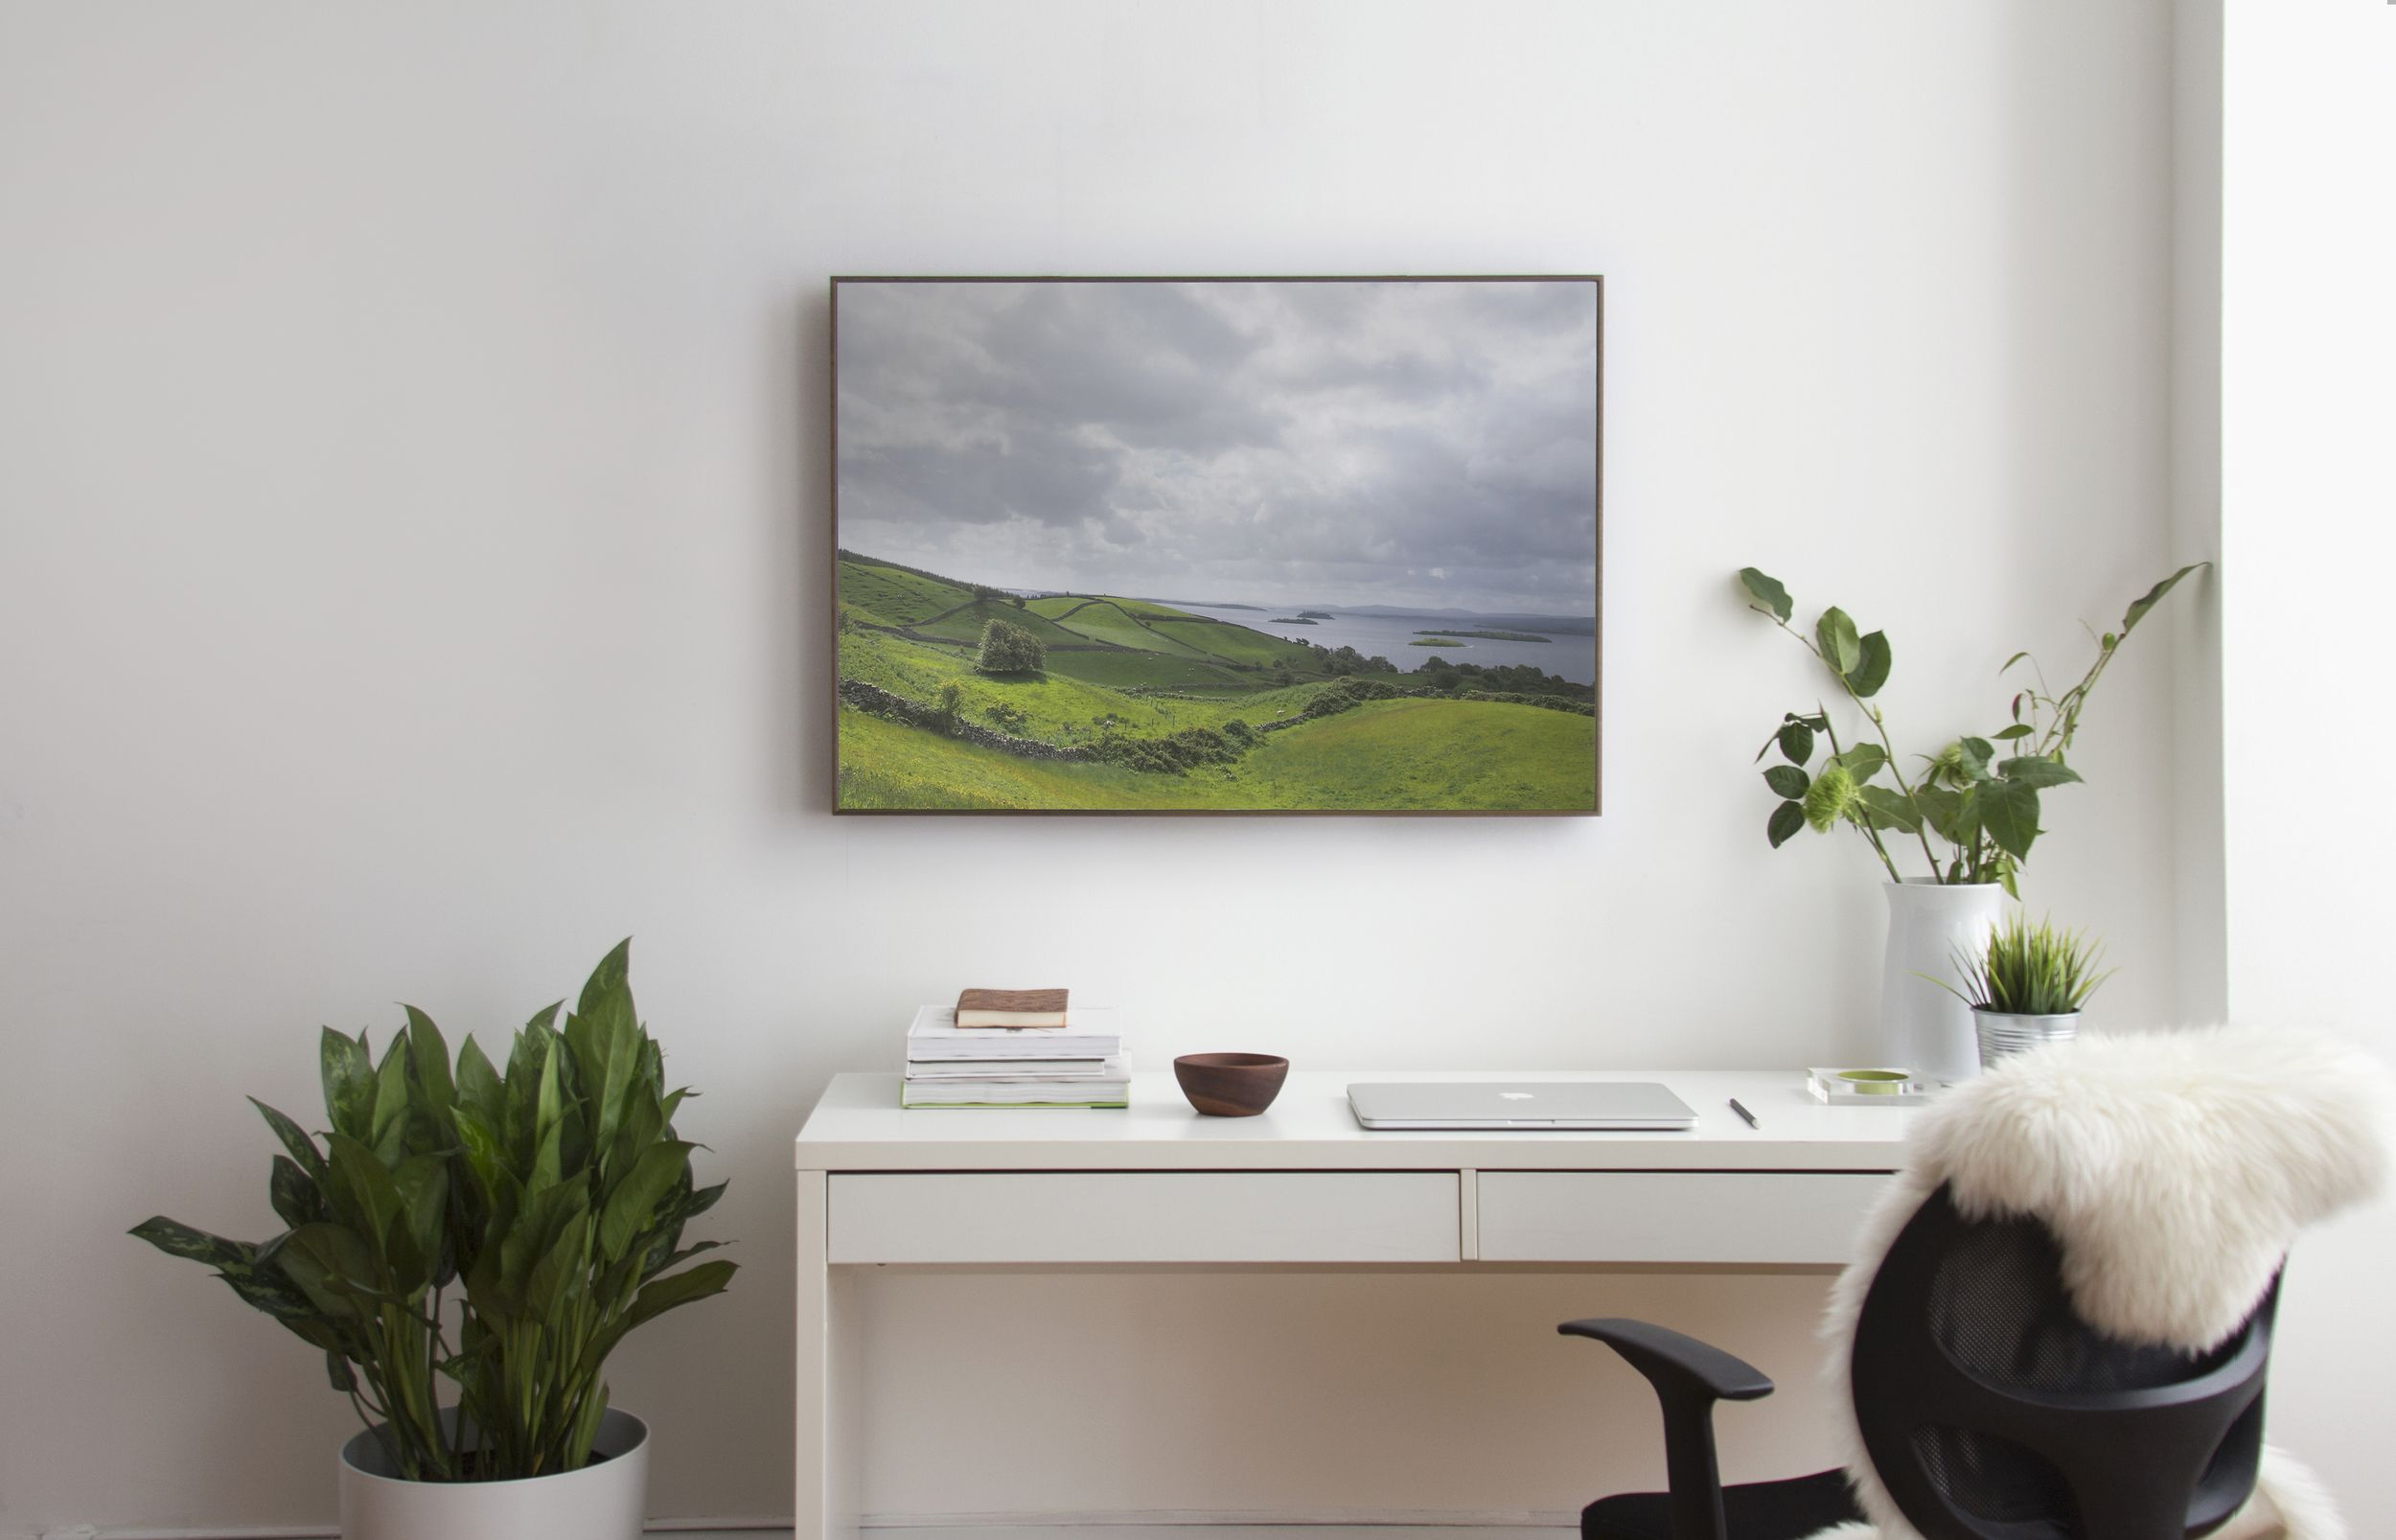 Soundwall is a smart product that hangs on your wall, looks ...